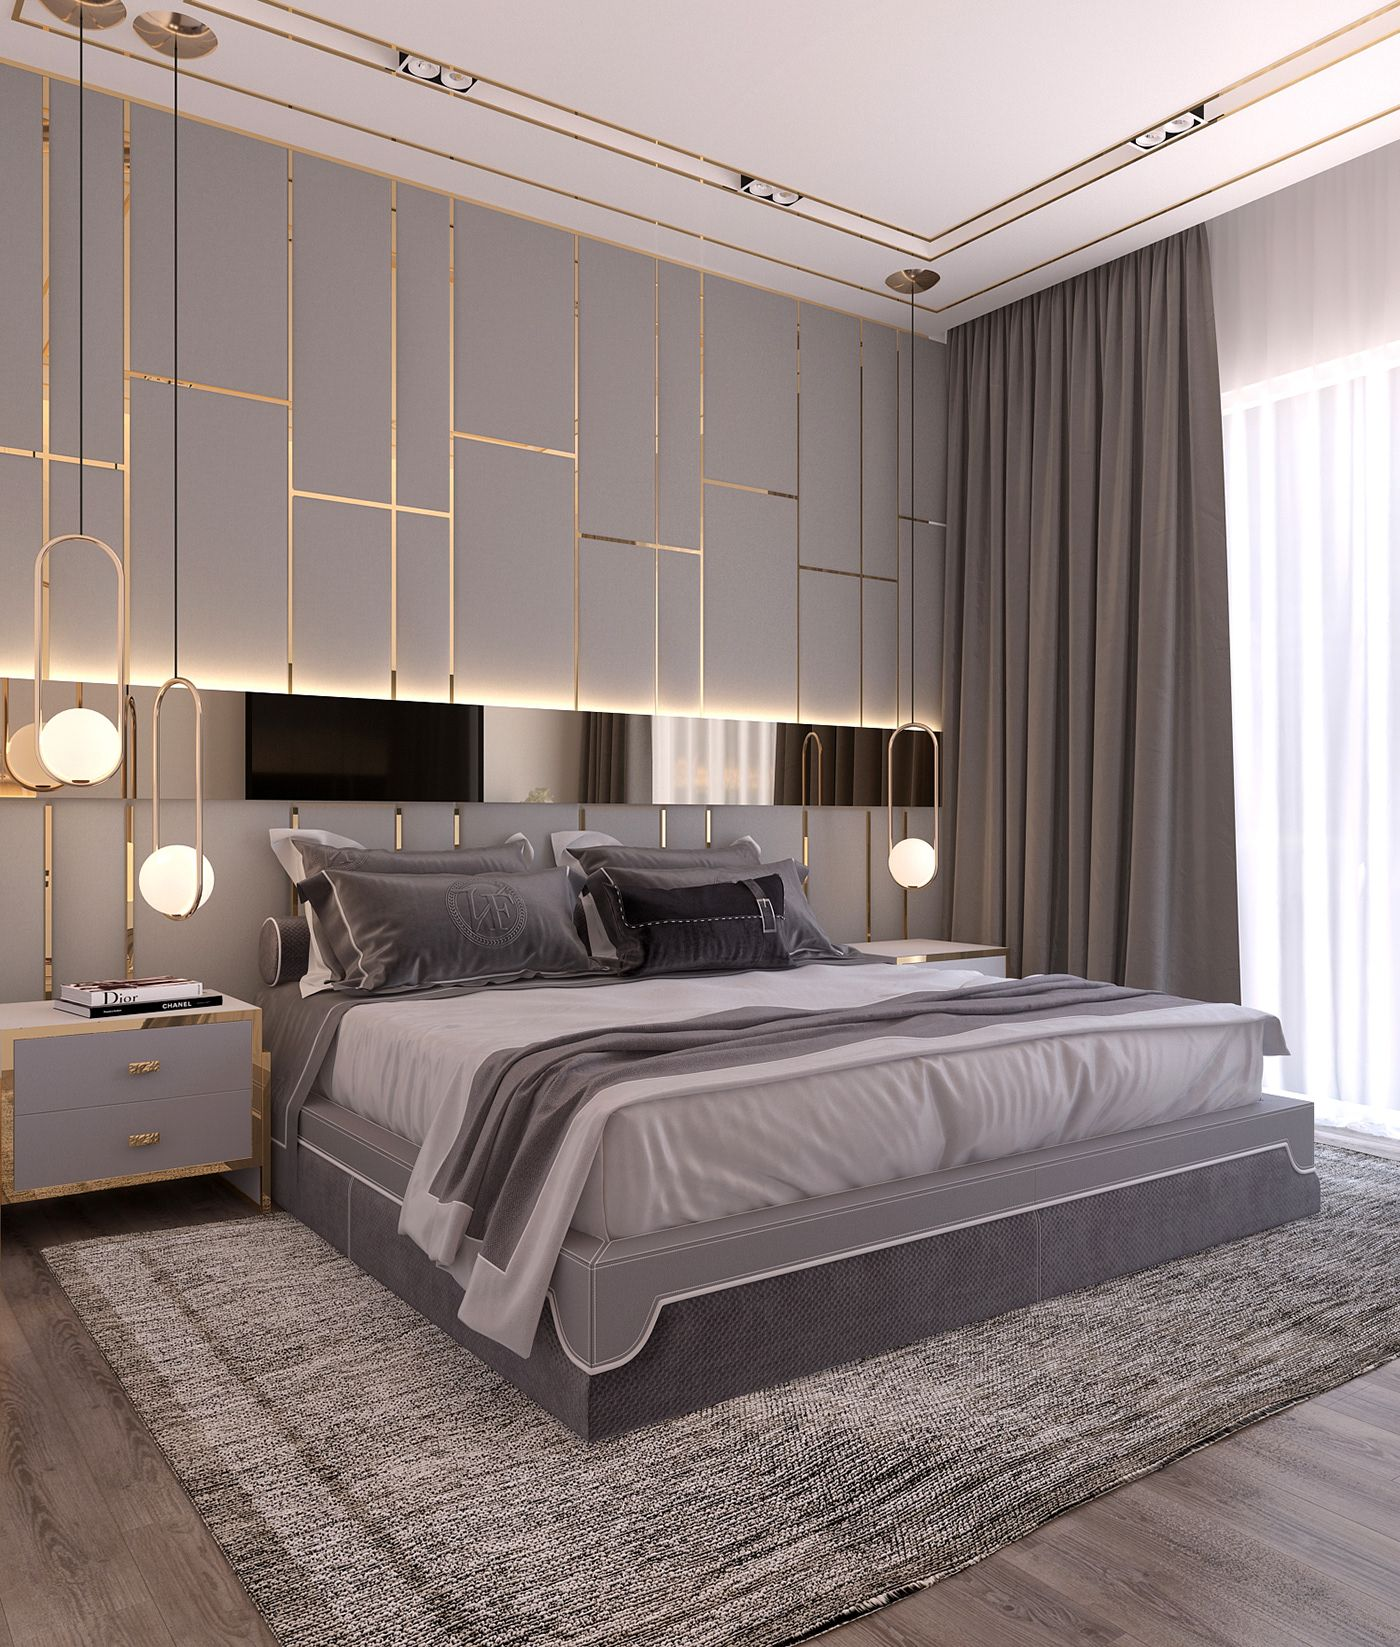 Design An Elegant Bedroom In 5 Easy Steps: Modern Style Bedroom *Dubai Project On Behance In 2019